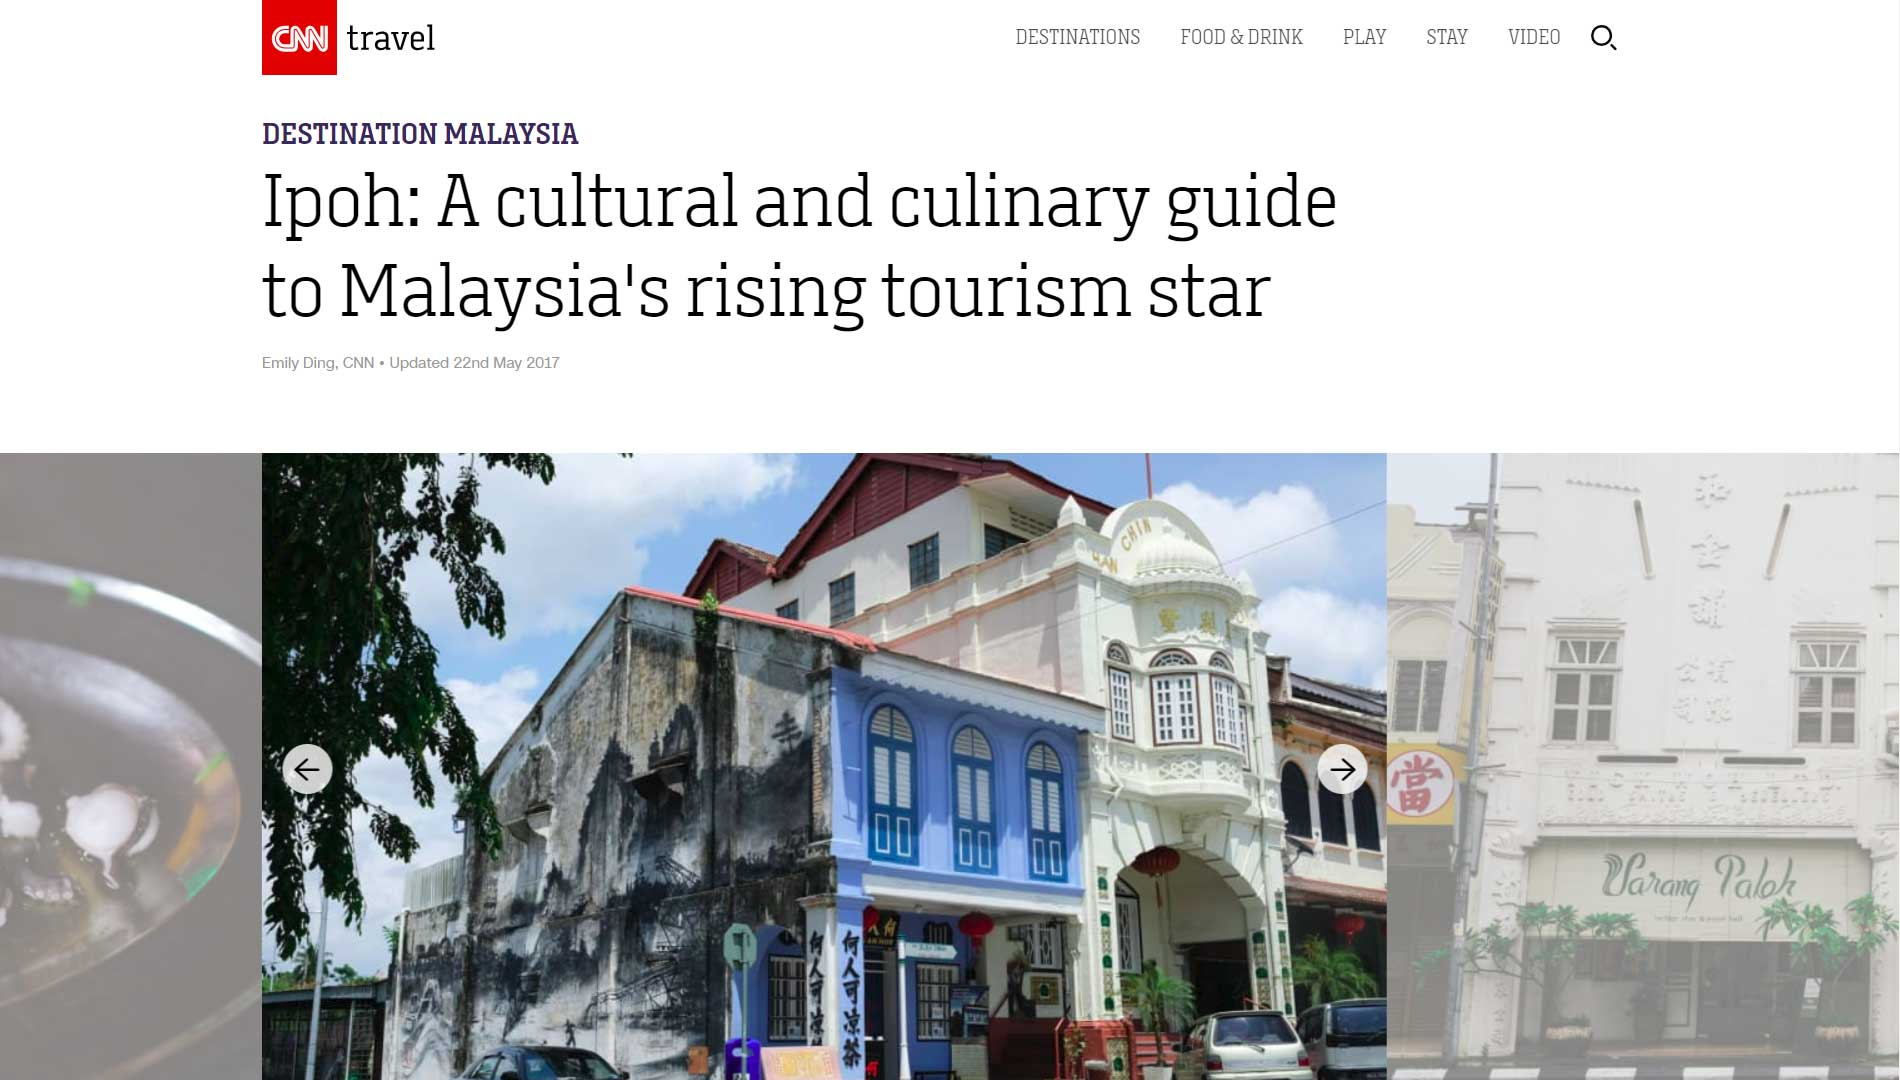 Ipoh Secrets Article on CNN Travel